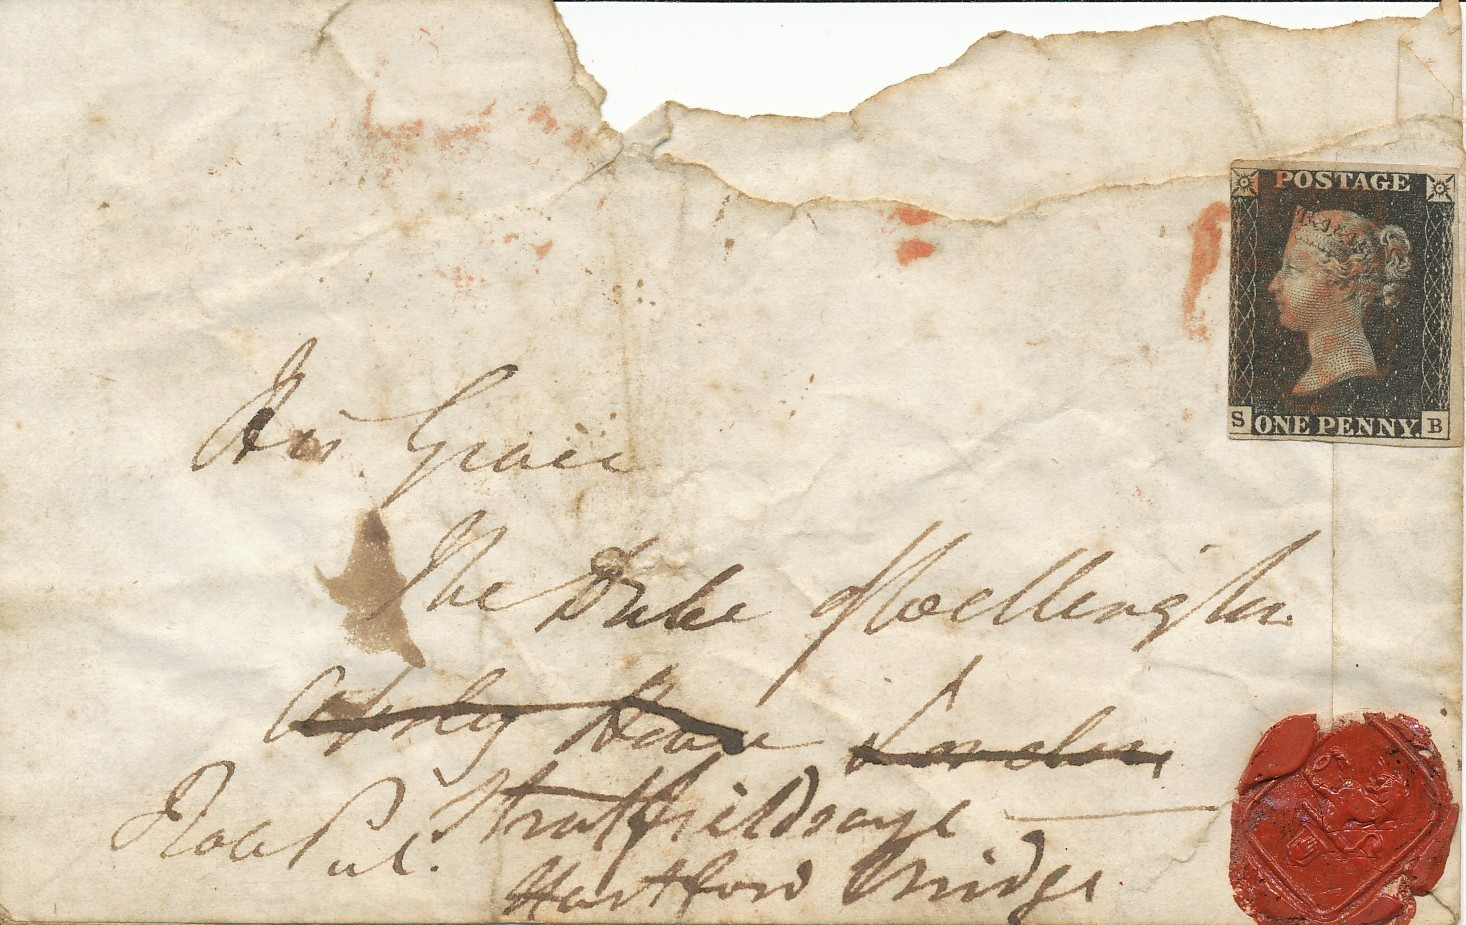 A Penny Black used to seal a letter (private collection).